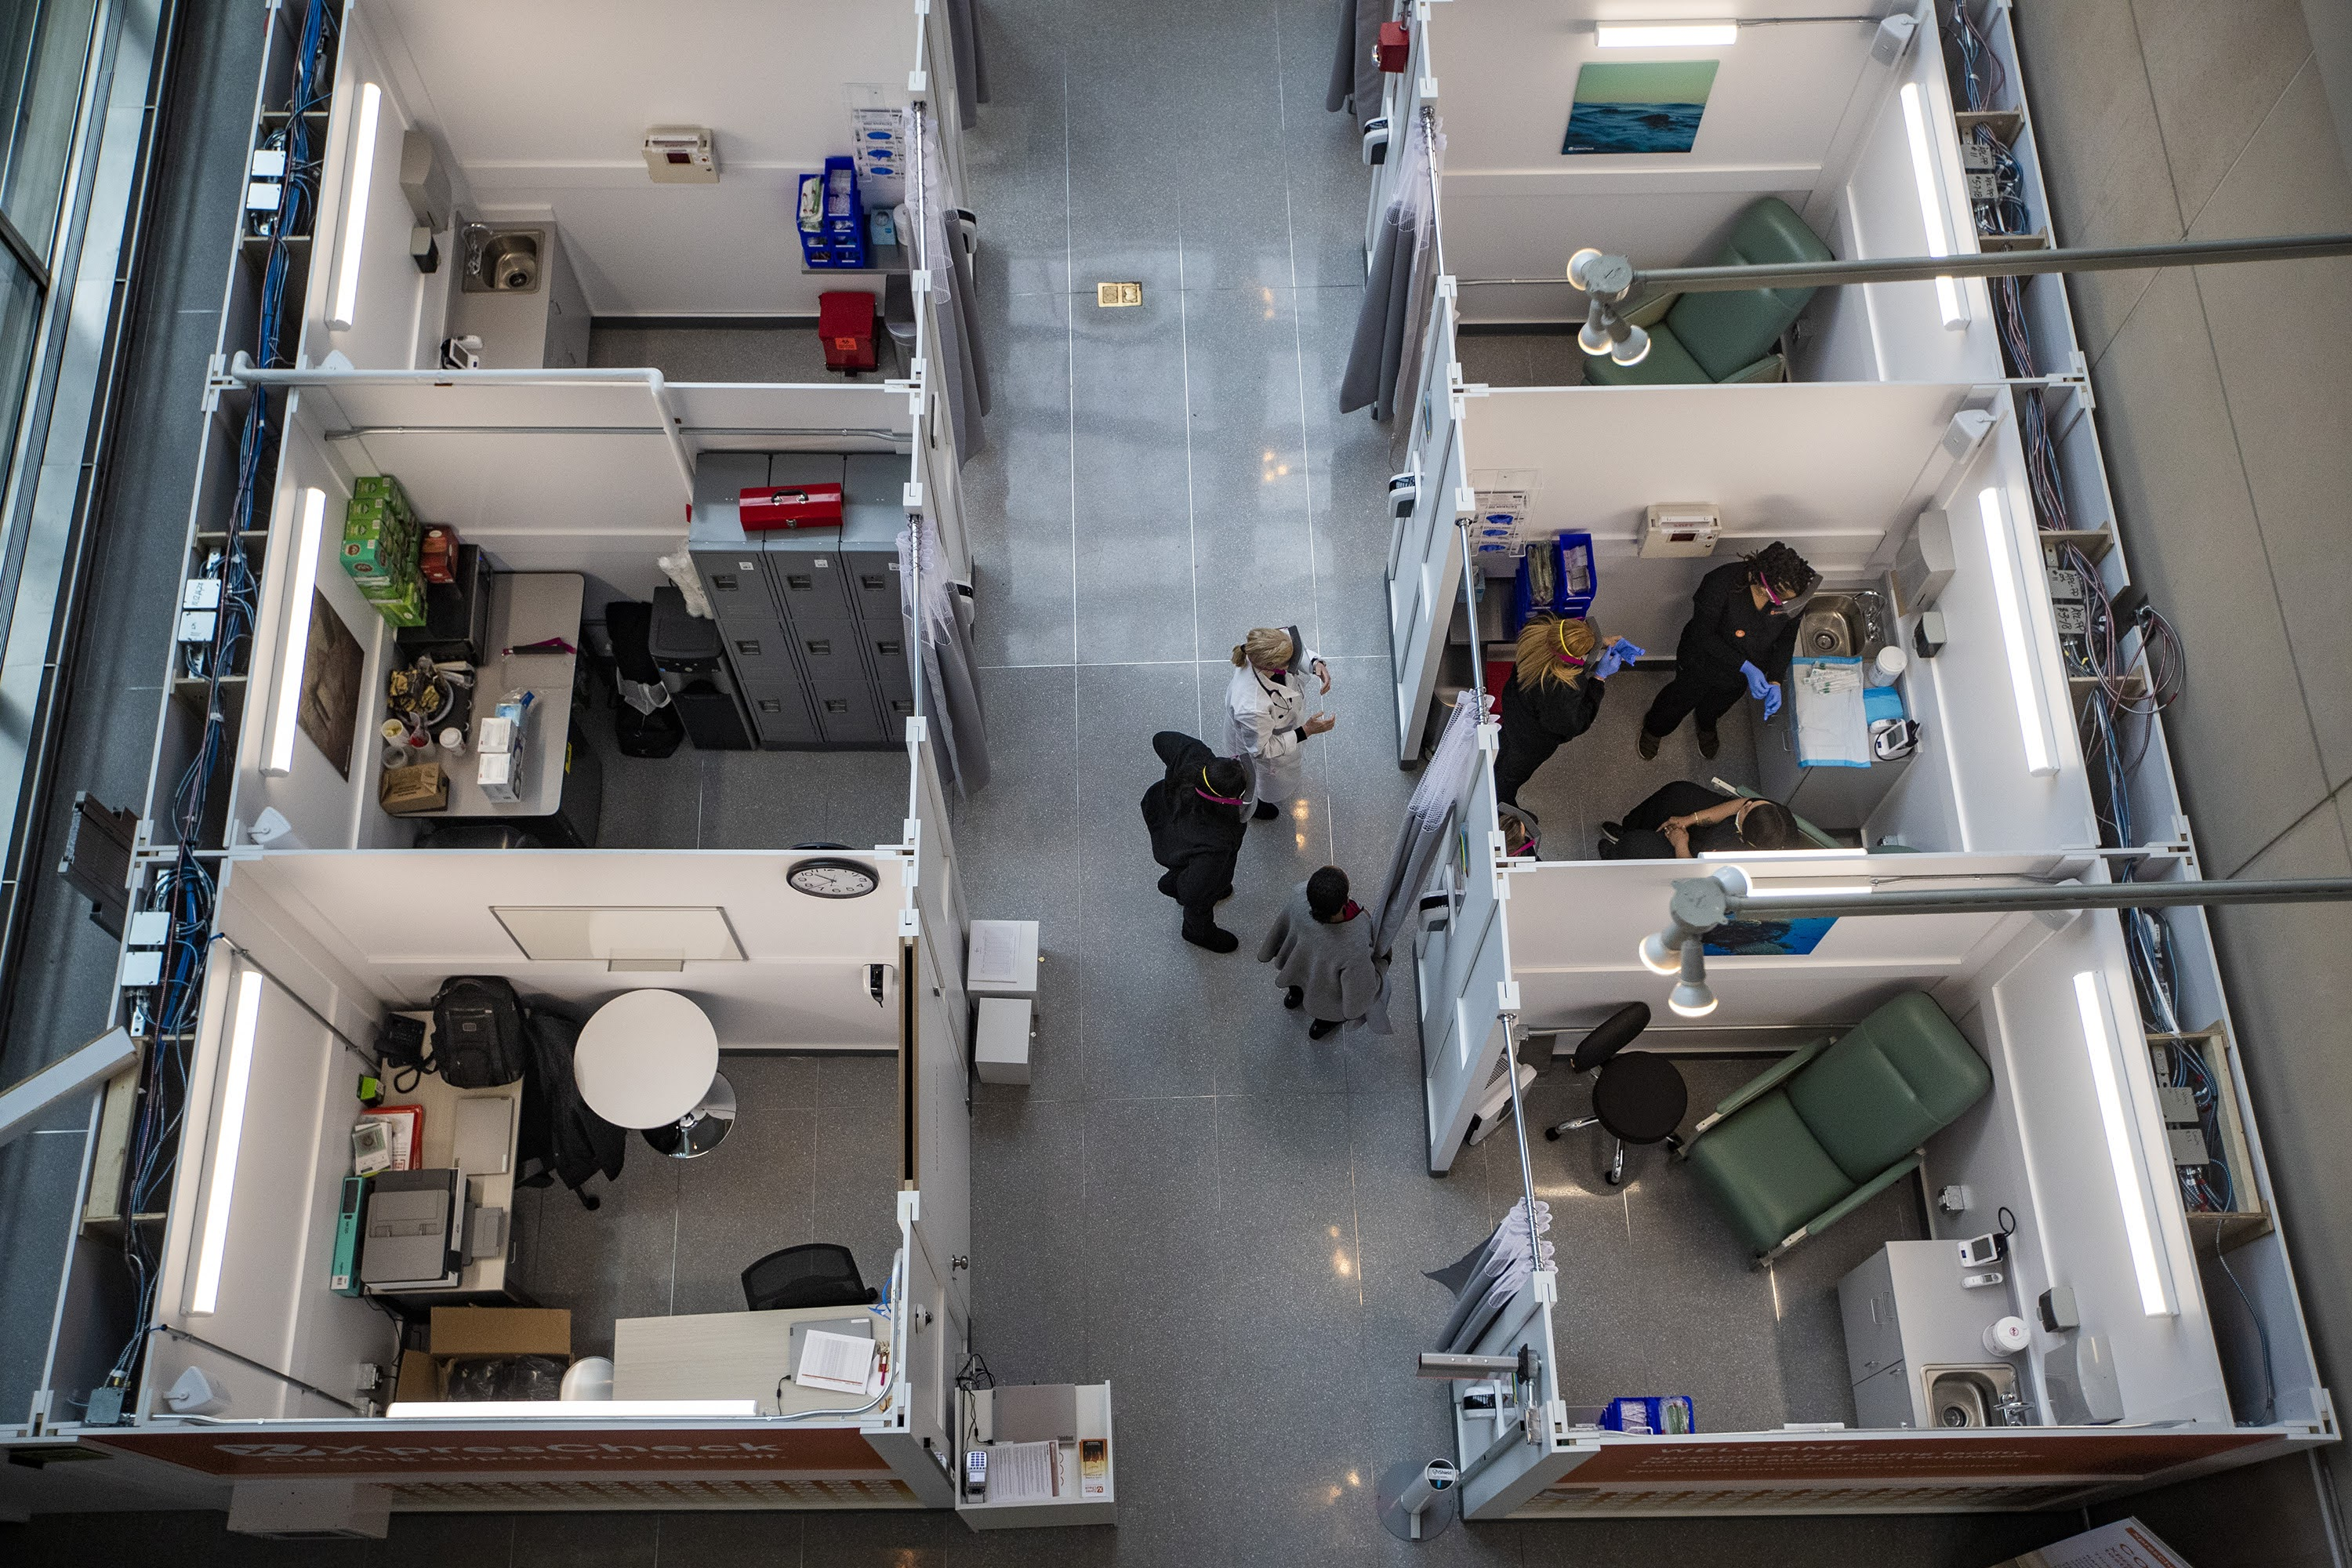 An overhead view of the XpresCheck COVID testing facility in Terminal E at Logan Airport on Wednesday. (Jesse Costa/WBUR)